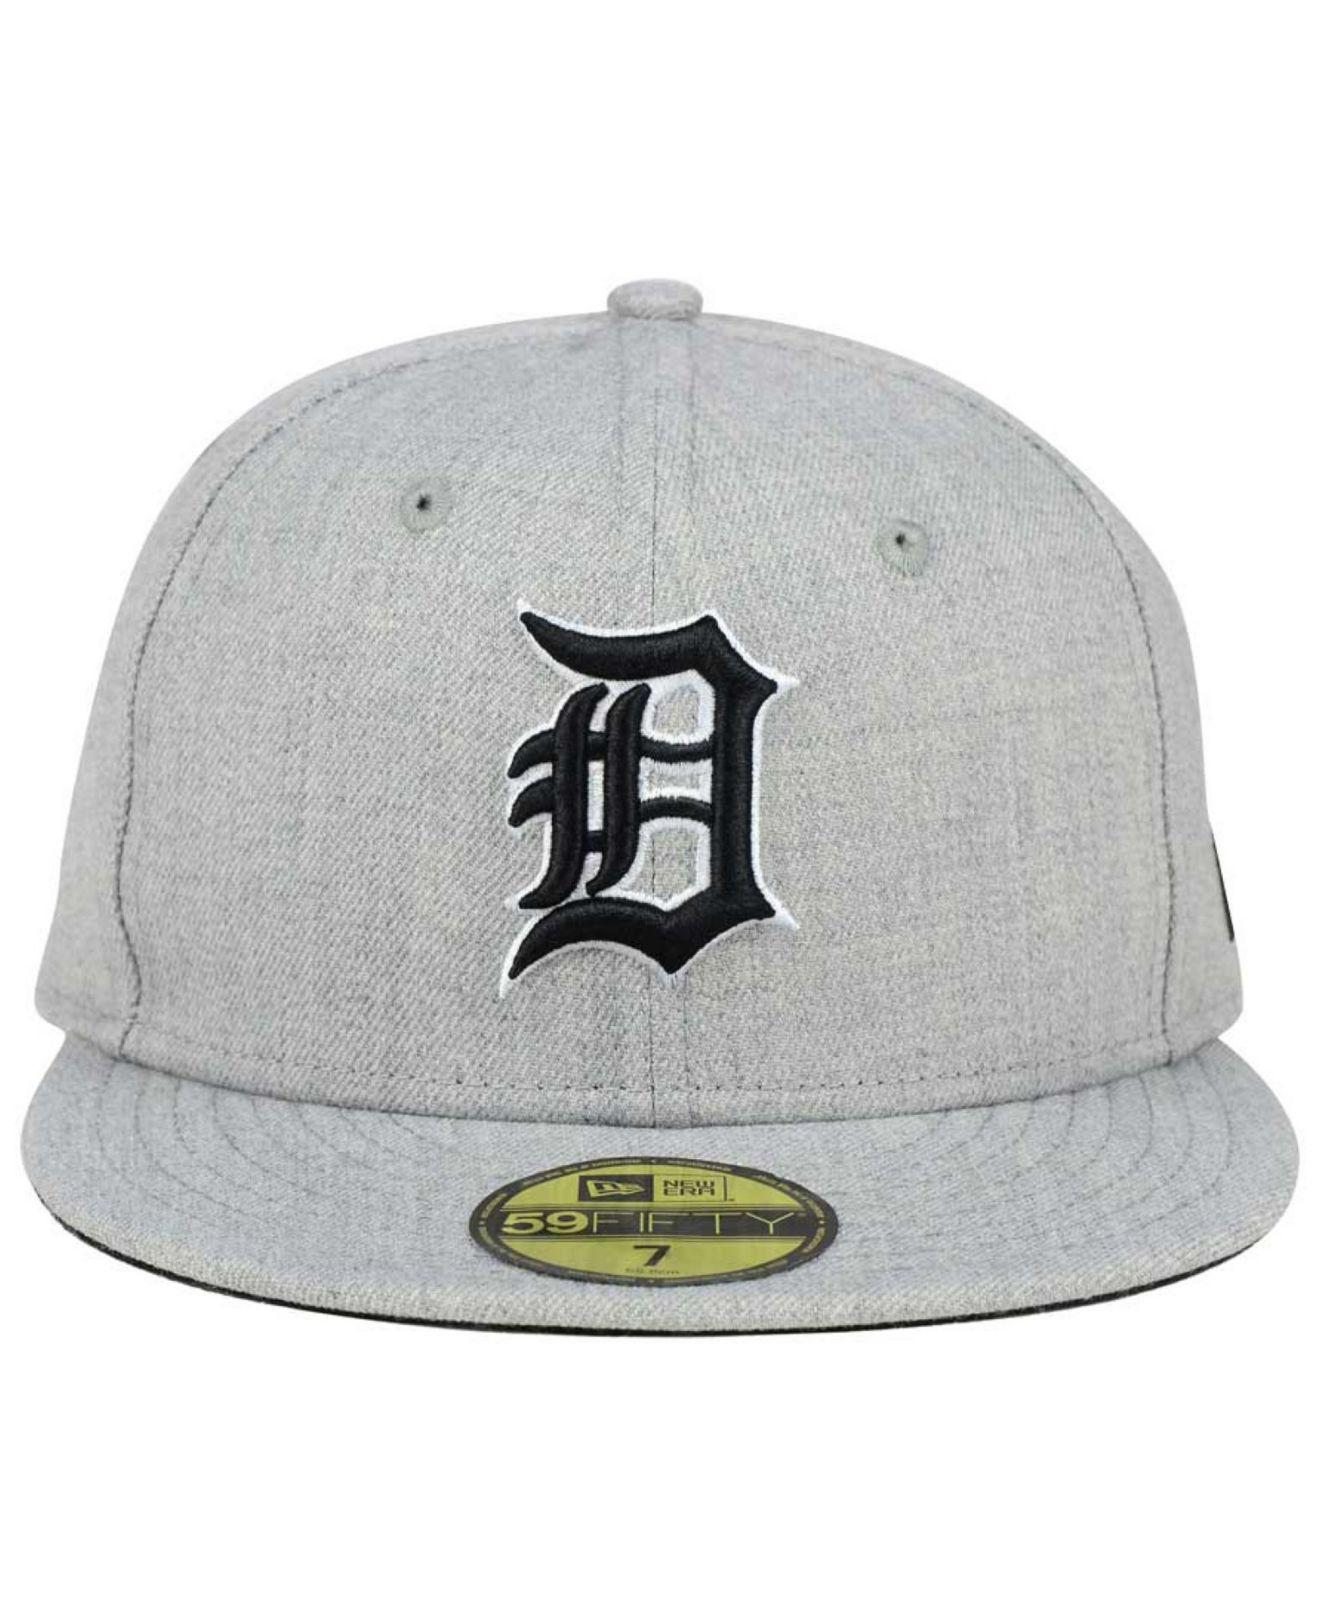 los angeles 17a02 772e5 Lyst - KTZ Detroit Tigers Heather Black White 59fifty Cap in Gray for Men